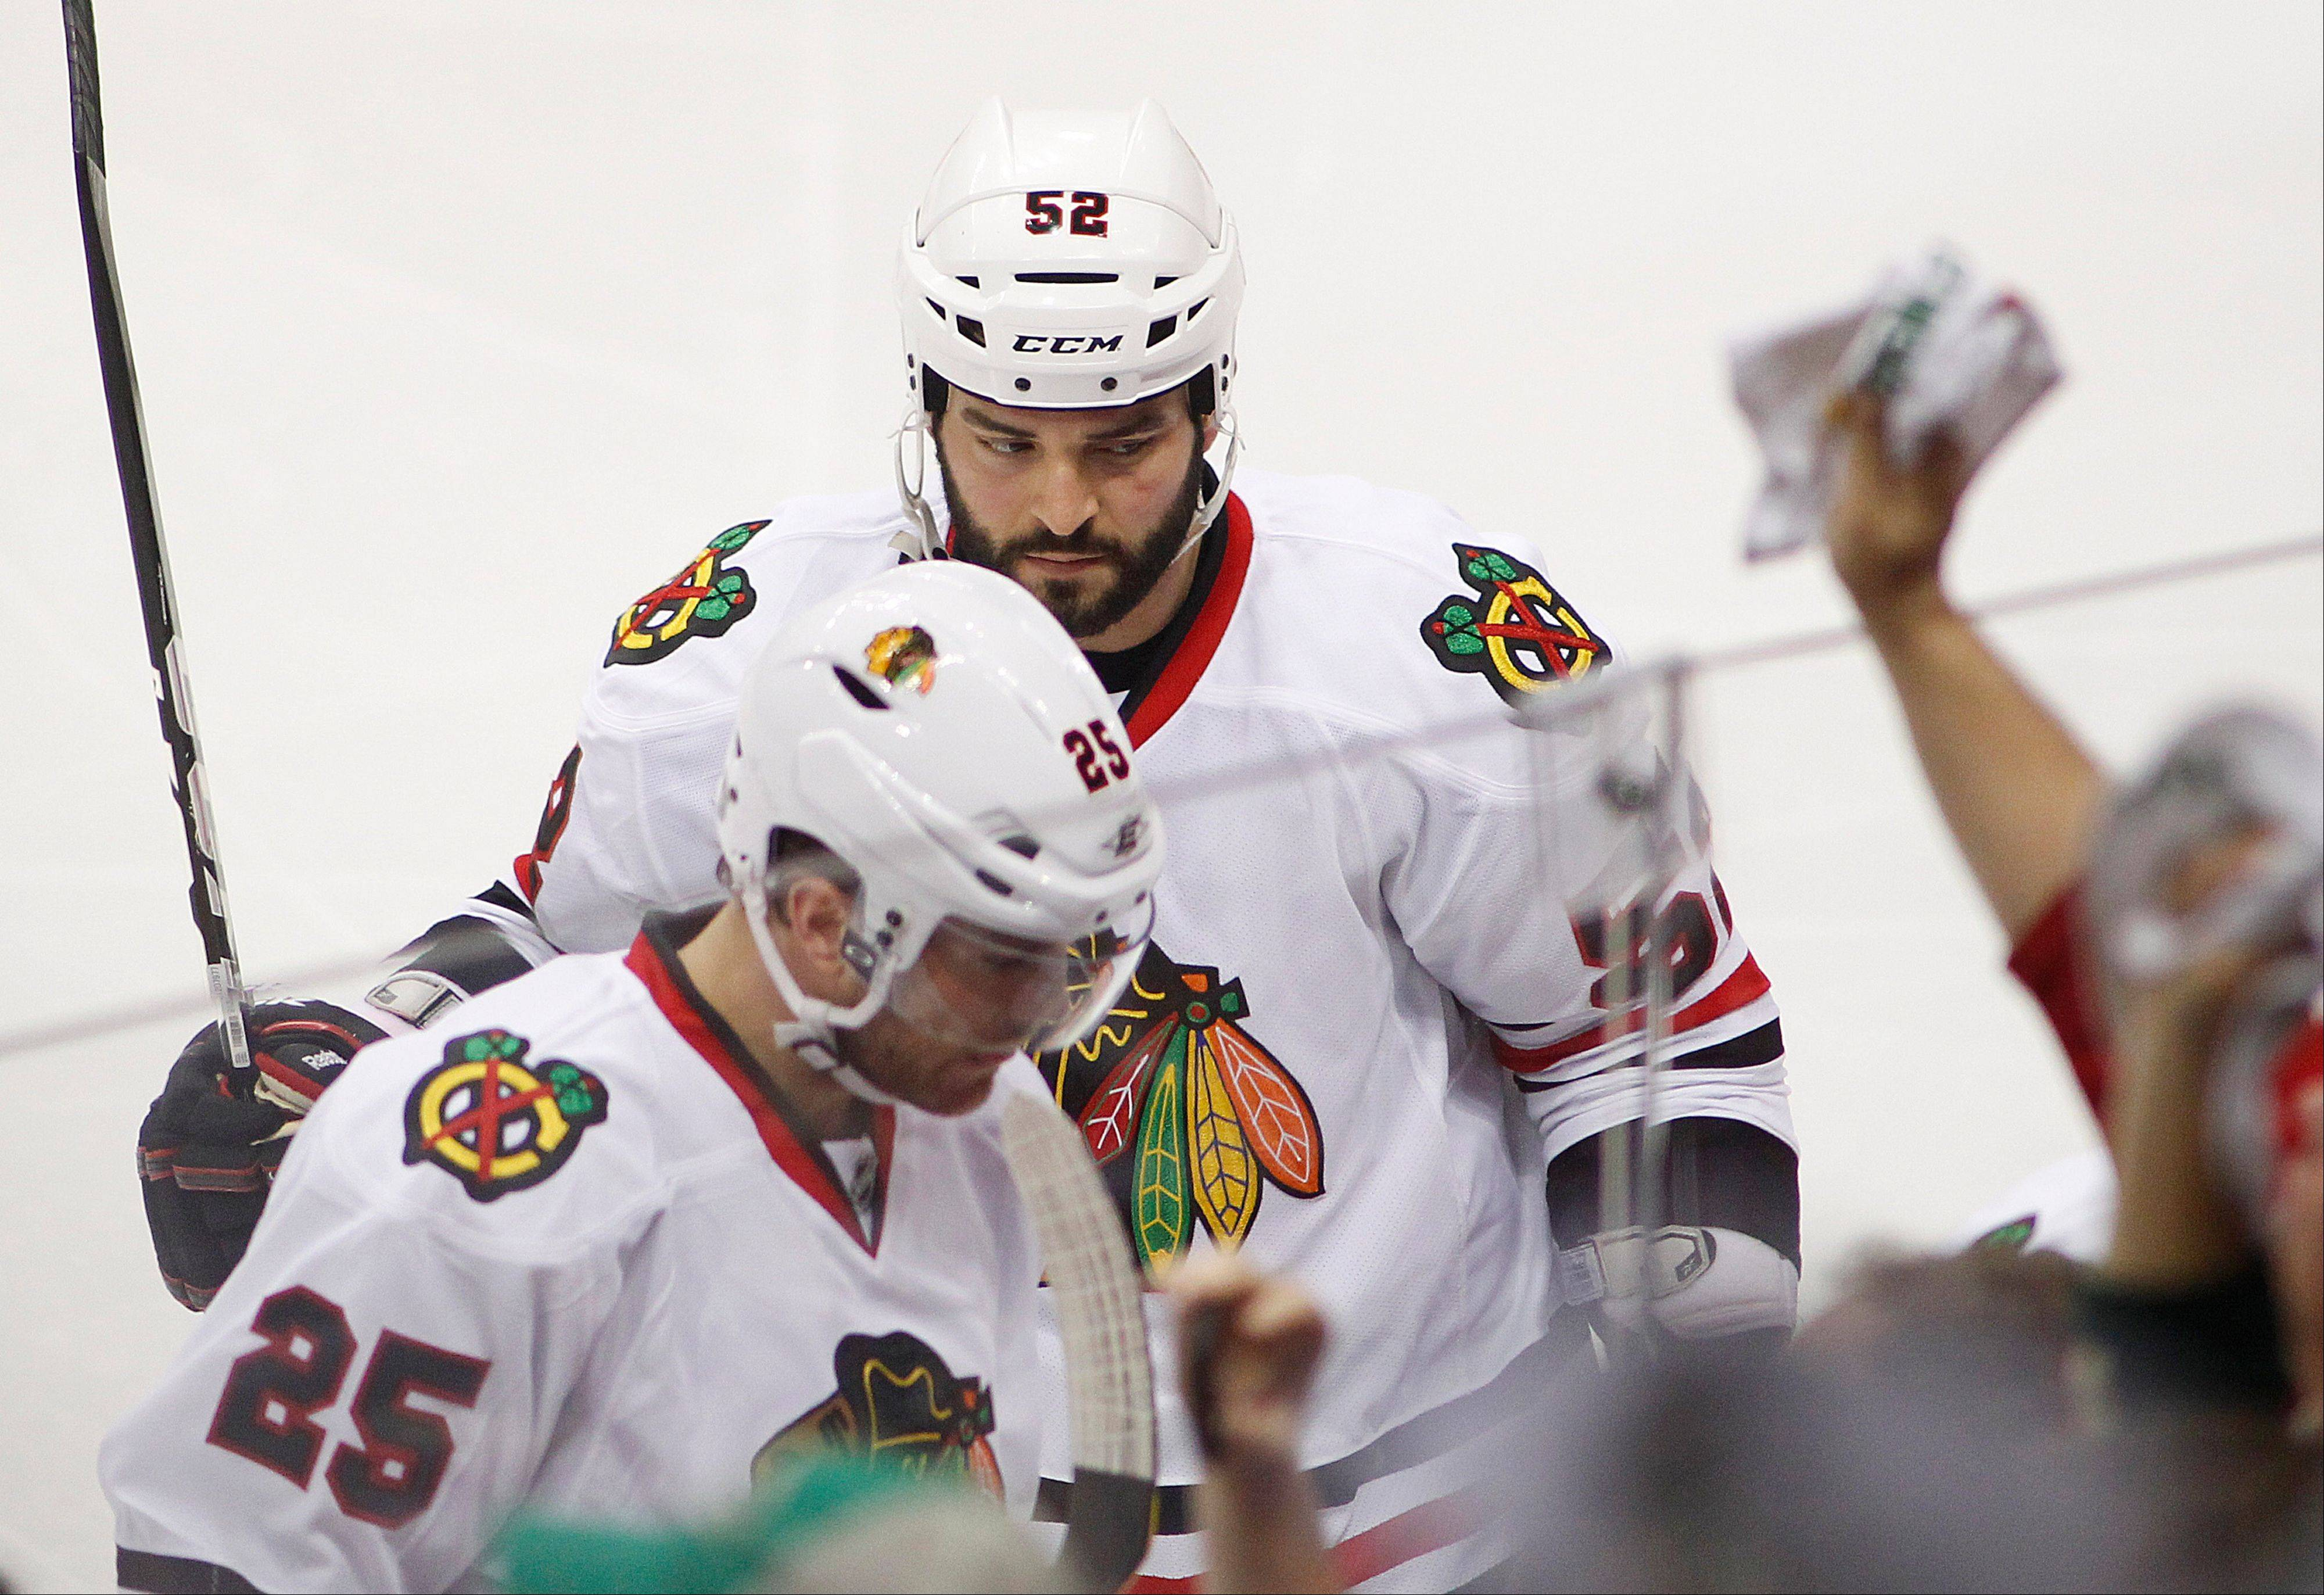 Chicago Blackhawks players Brandon Bollig, top, and Viktor Stalberg leave the ice after Minnesota Wild's Jason Zucker scored a goal in the overtime period. The Wild defeated the Blackhawks 3-2.